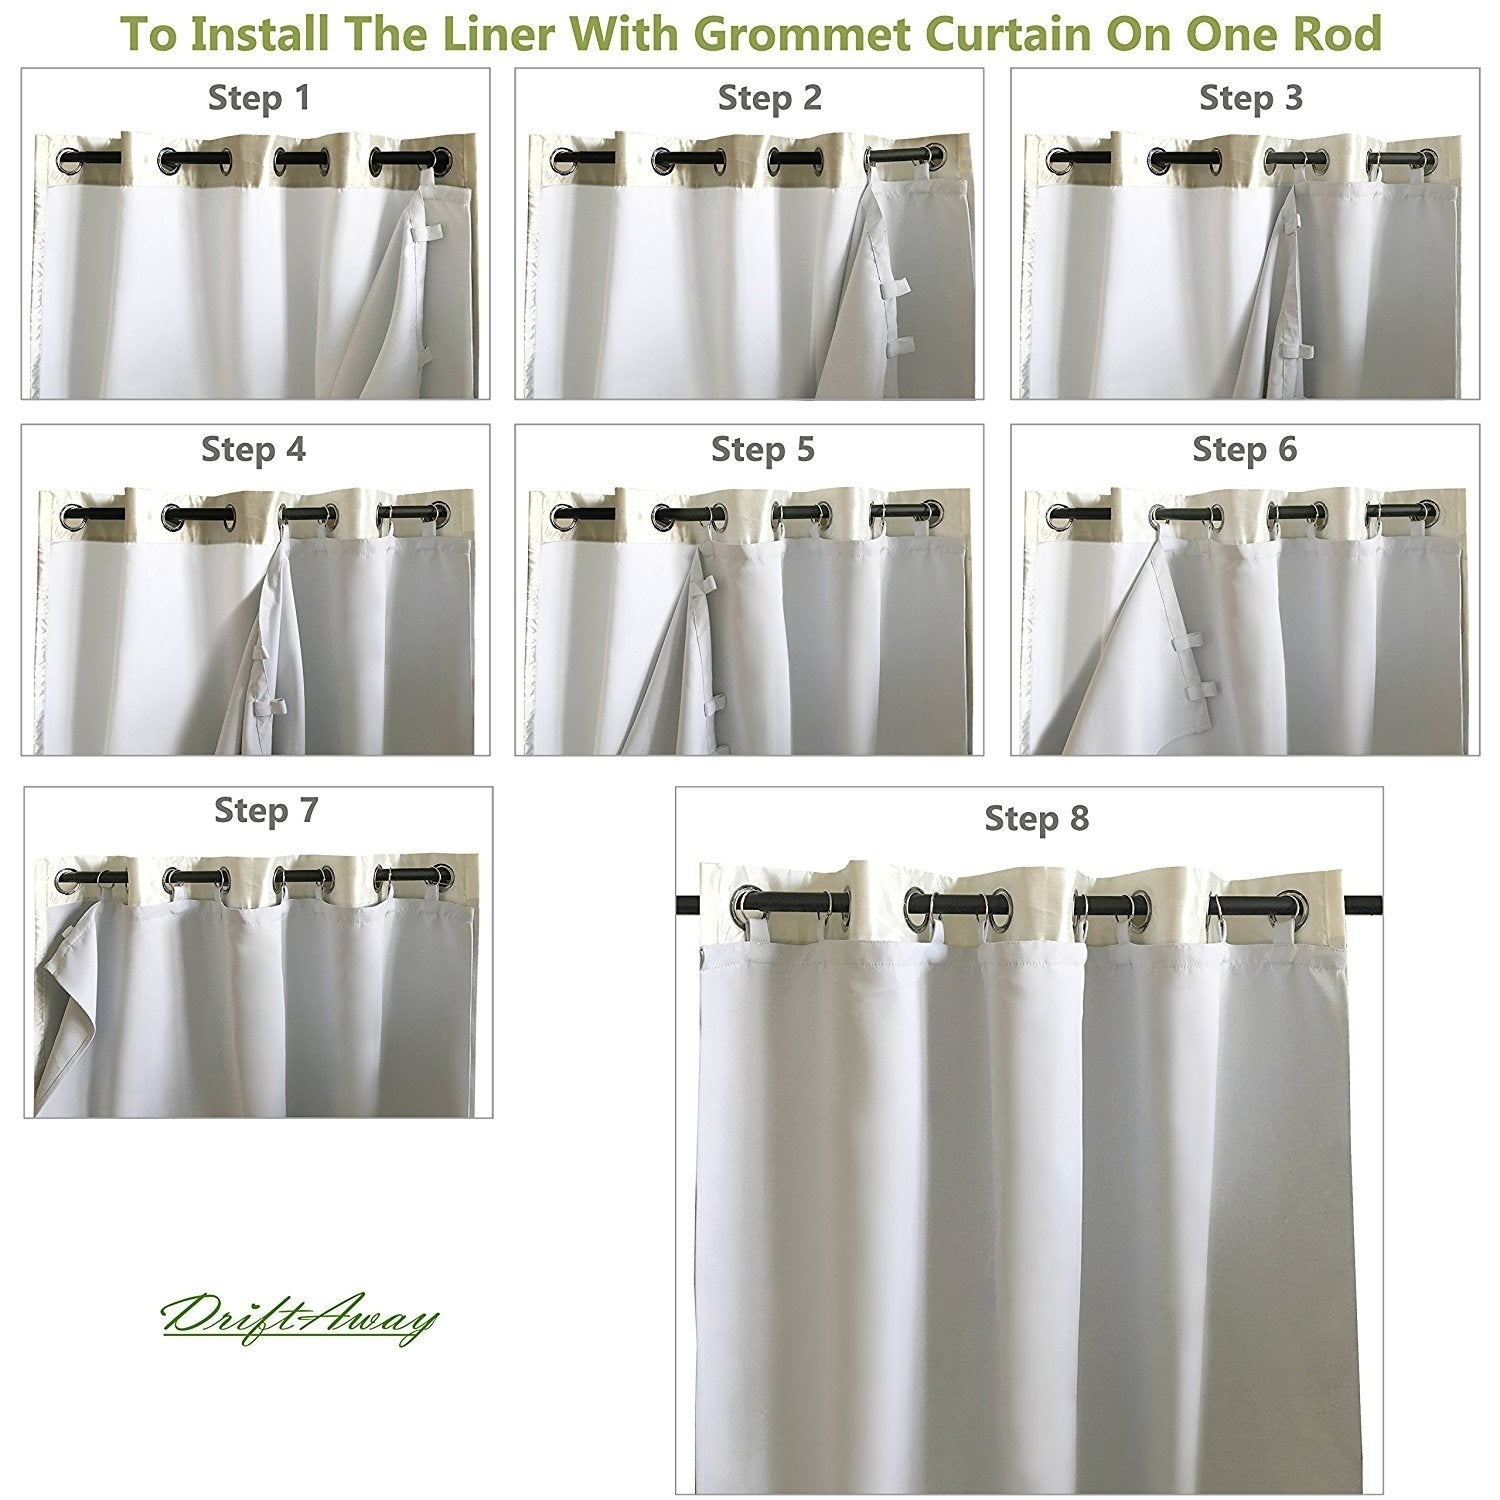 Shop DriftAway Insulated Blackout Curtain Liner For Grommet Curtains